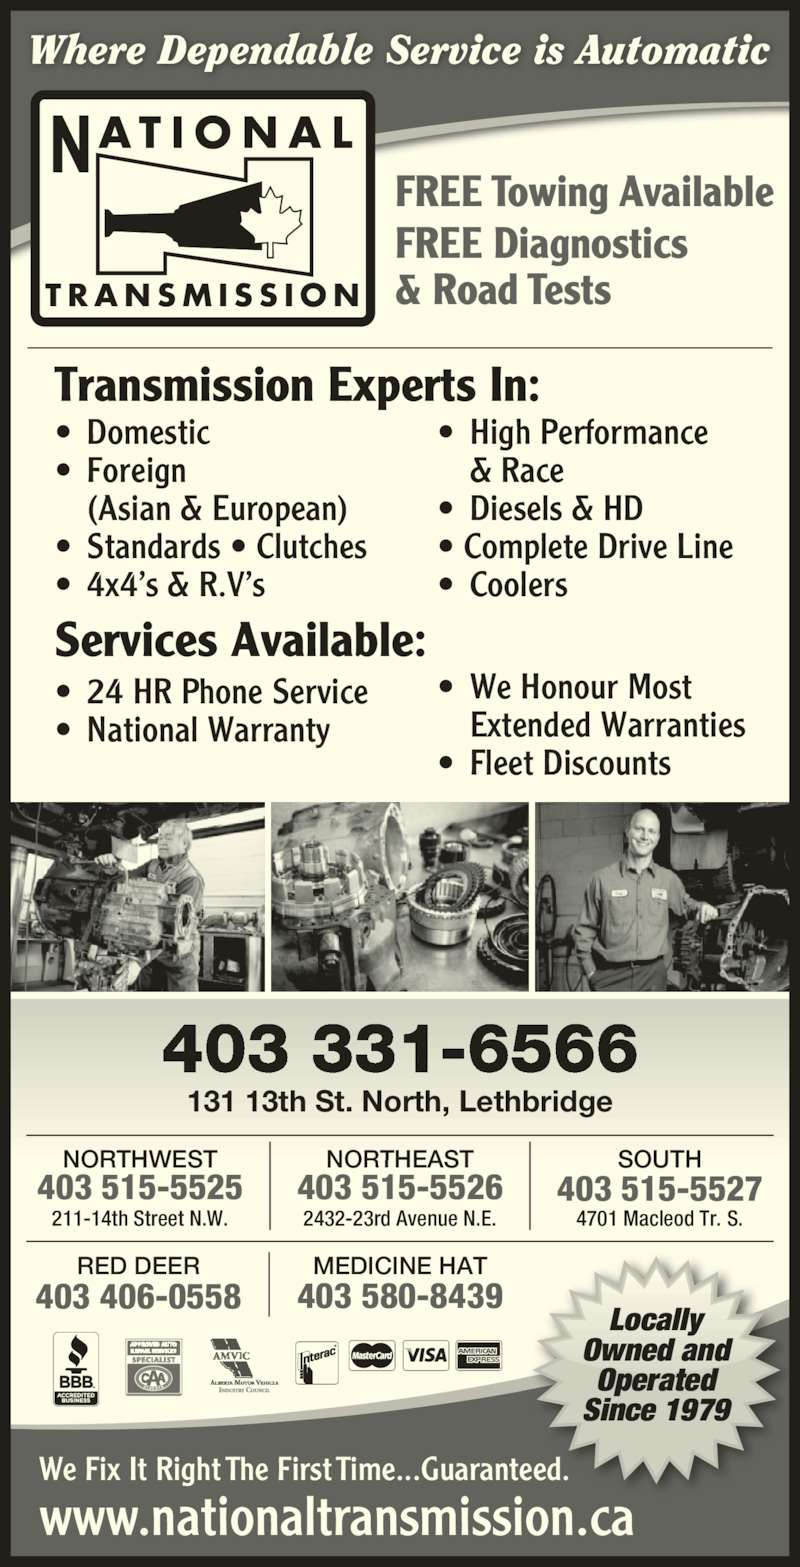 National Transmissions (403-320-0447) - Display Ad - www.nationaltransmission.ca T R A N S M I S S I O N AT I O N A LN Locally Owned and Operated Since 1979 Where Dependable Service is Automatic FREE Diagnostics & Road Tests FREE Towing Available We Fix It Right The First Time...Guaranteed. 403 331-6566 403 406-0558 RED DEER 403 580-8439 MEDICINE HAT SOUTH 403 515-5527 4701 Macleod Tr. S. 403 515-5526 NORTHEAST 2432-23rd Avenue N.E. NORTHWEST 403 515-5525 211-14th Street N.W. Transmission Experts In: ? Domestic ? Foreign   (Asian & European) ? Standards ? Clutches ? 4x4?s & R.V?s ? High Performance   & Race ? Diesels & HD  ? Complete Drive Line ? Coolers Services Available: ? 24 HR Phone Service ? National Warranty ? We Honour Most   Extended Warranties ? Fleet Discounts 131 13th St. North, Lethbridge